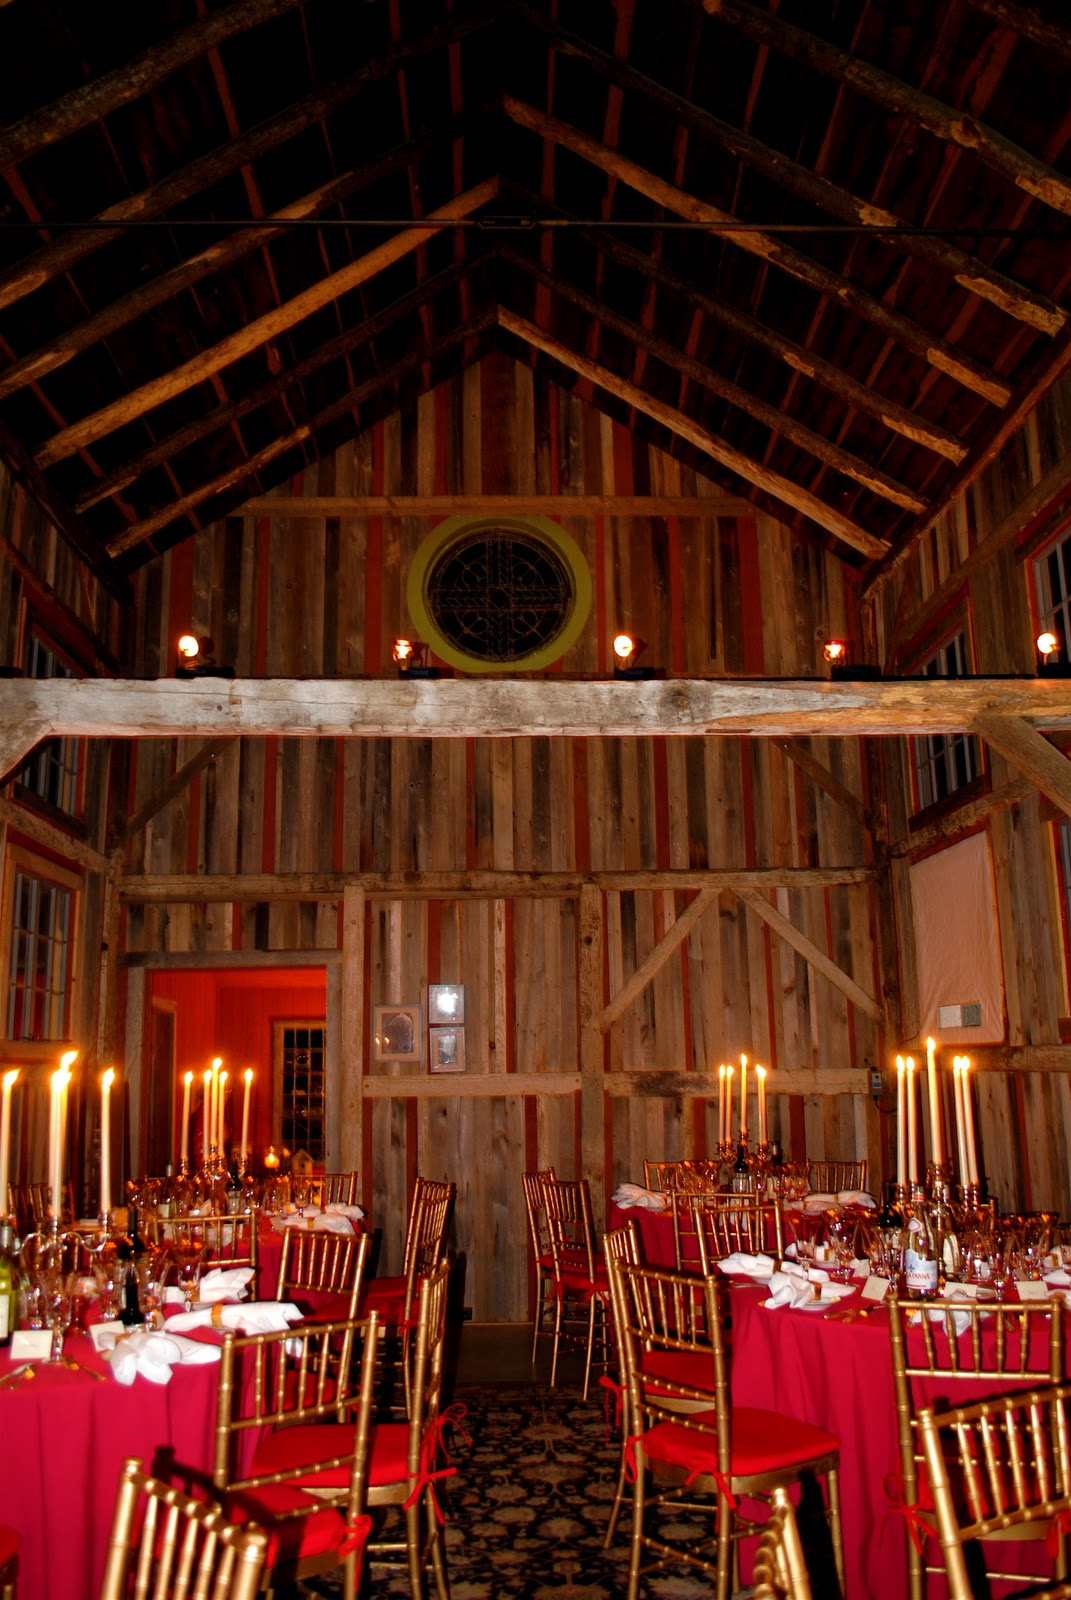 Party Resources: Party Details: Christmas Party in Our Barn